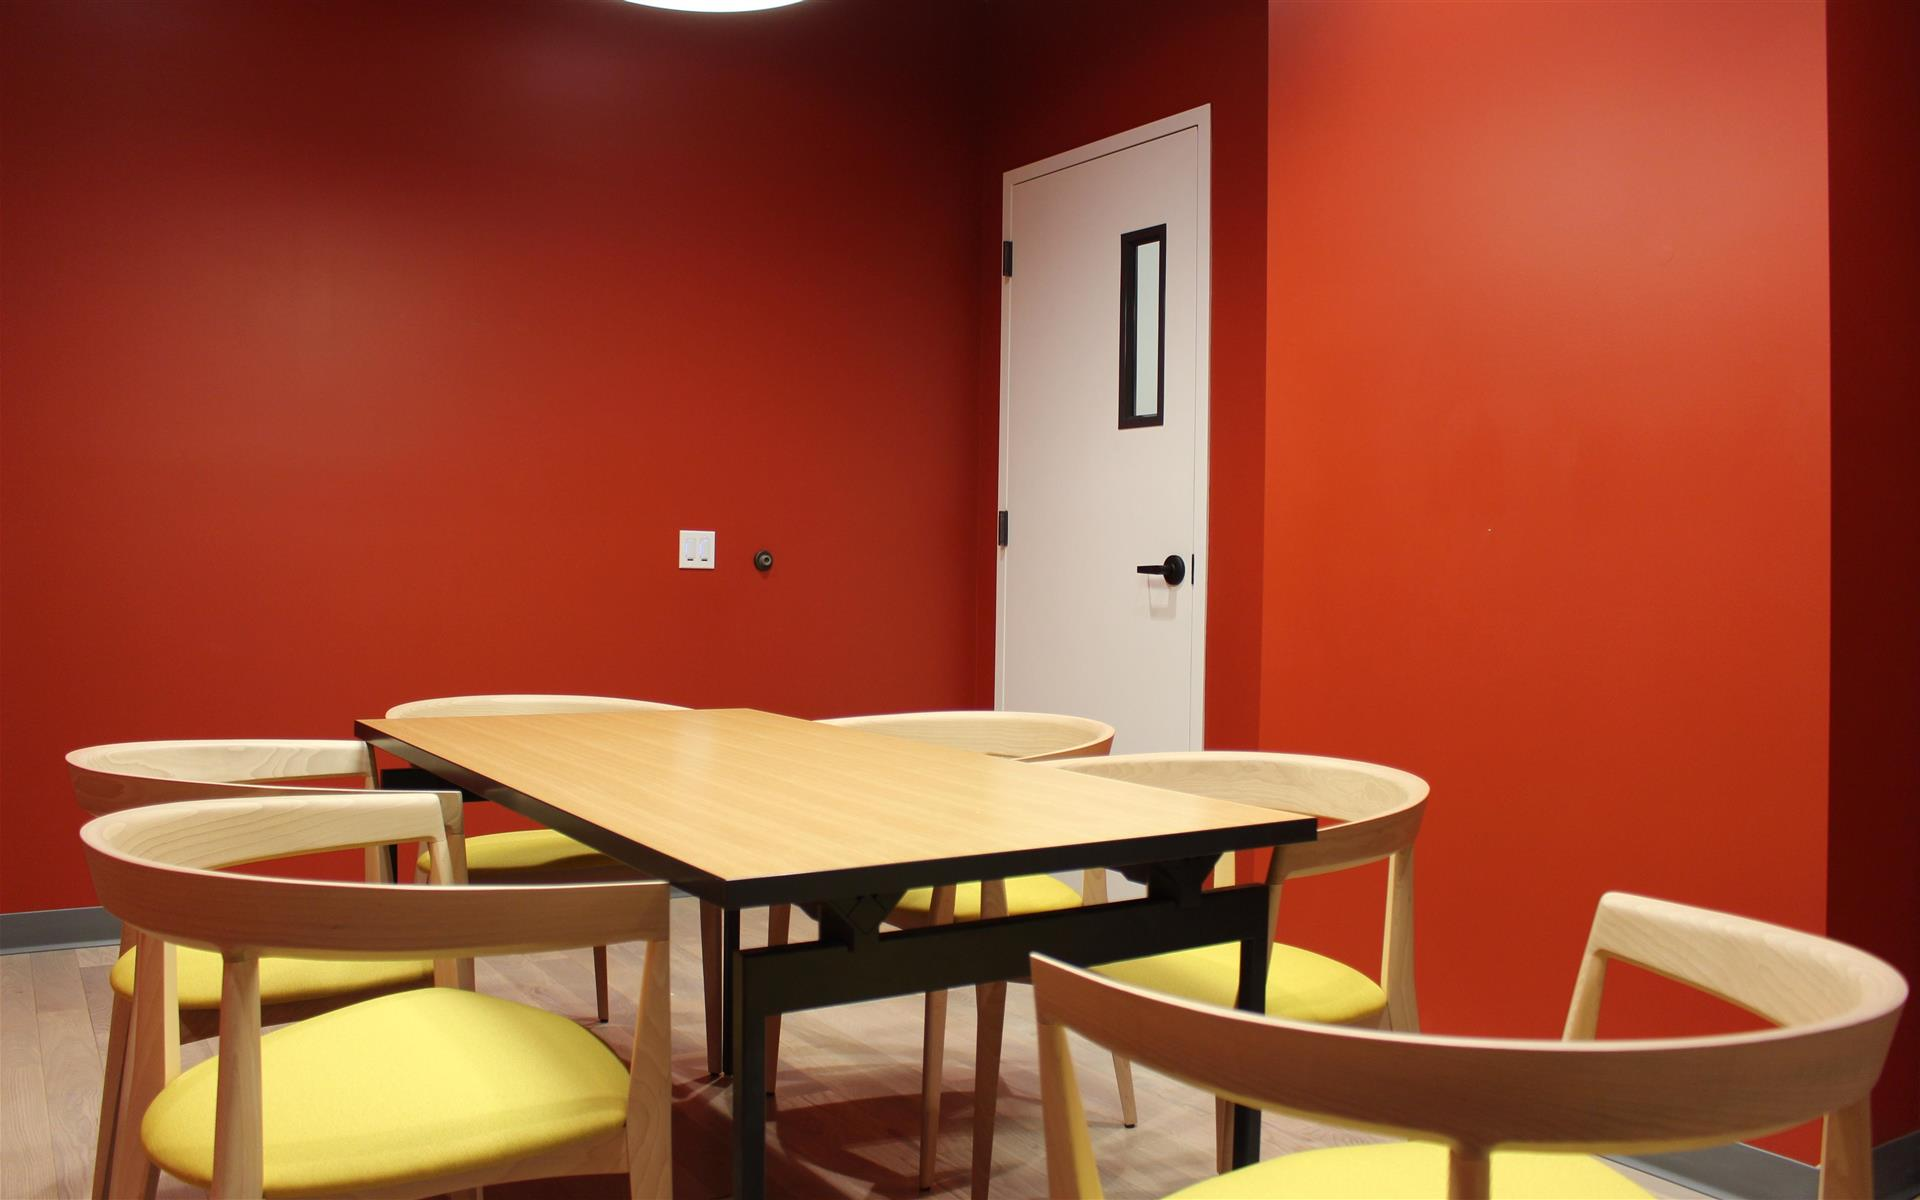 Capital One Café - Glendale - The Red Room